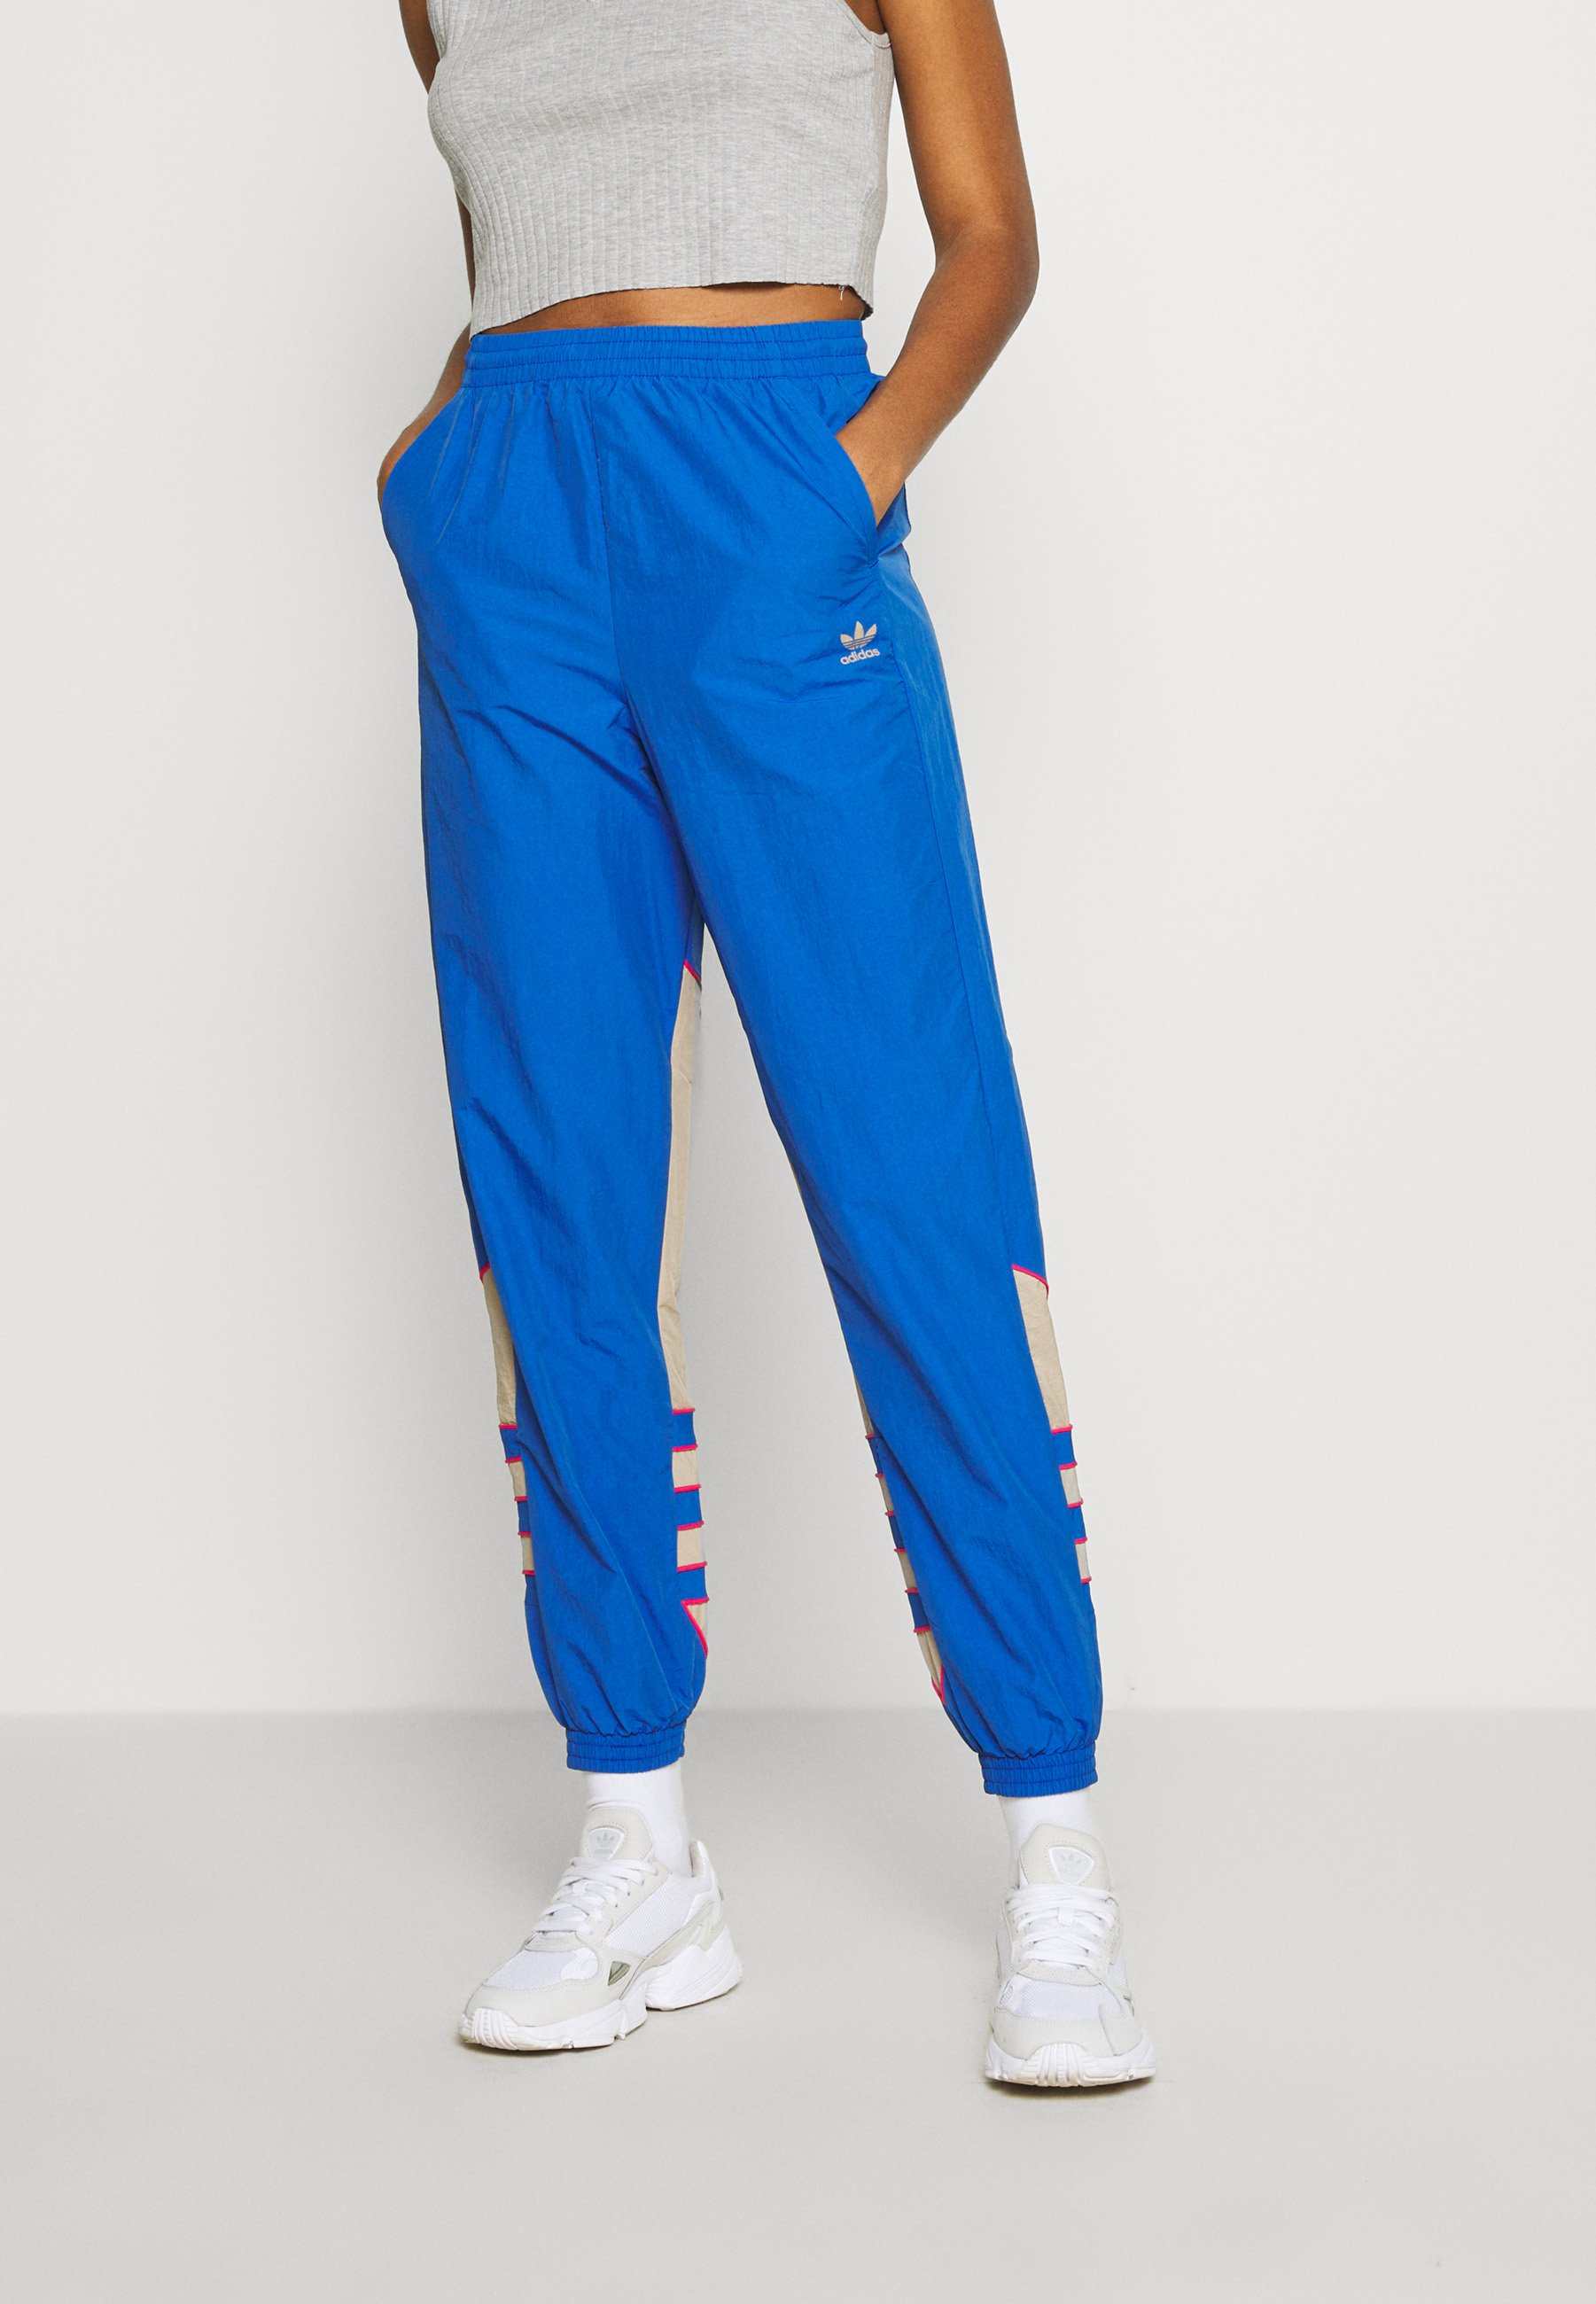 Mira abajo Labor  adidas Originals BIG - Pantalones deportivos - team royal blue/trace  khaki/power pink/azul royal - Zalando.es